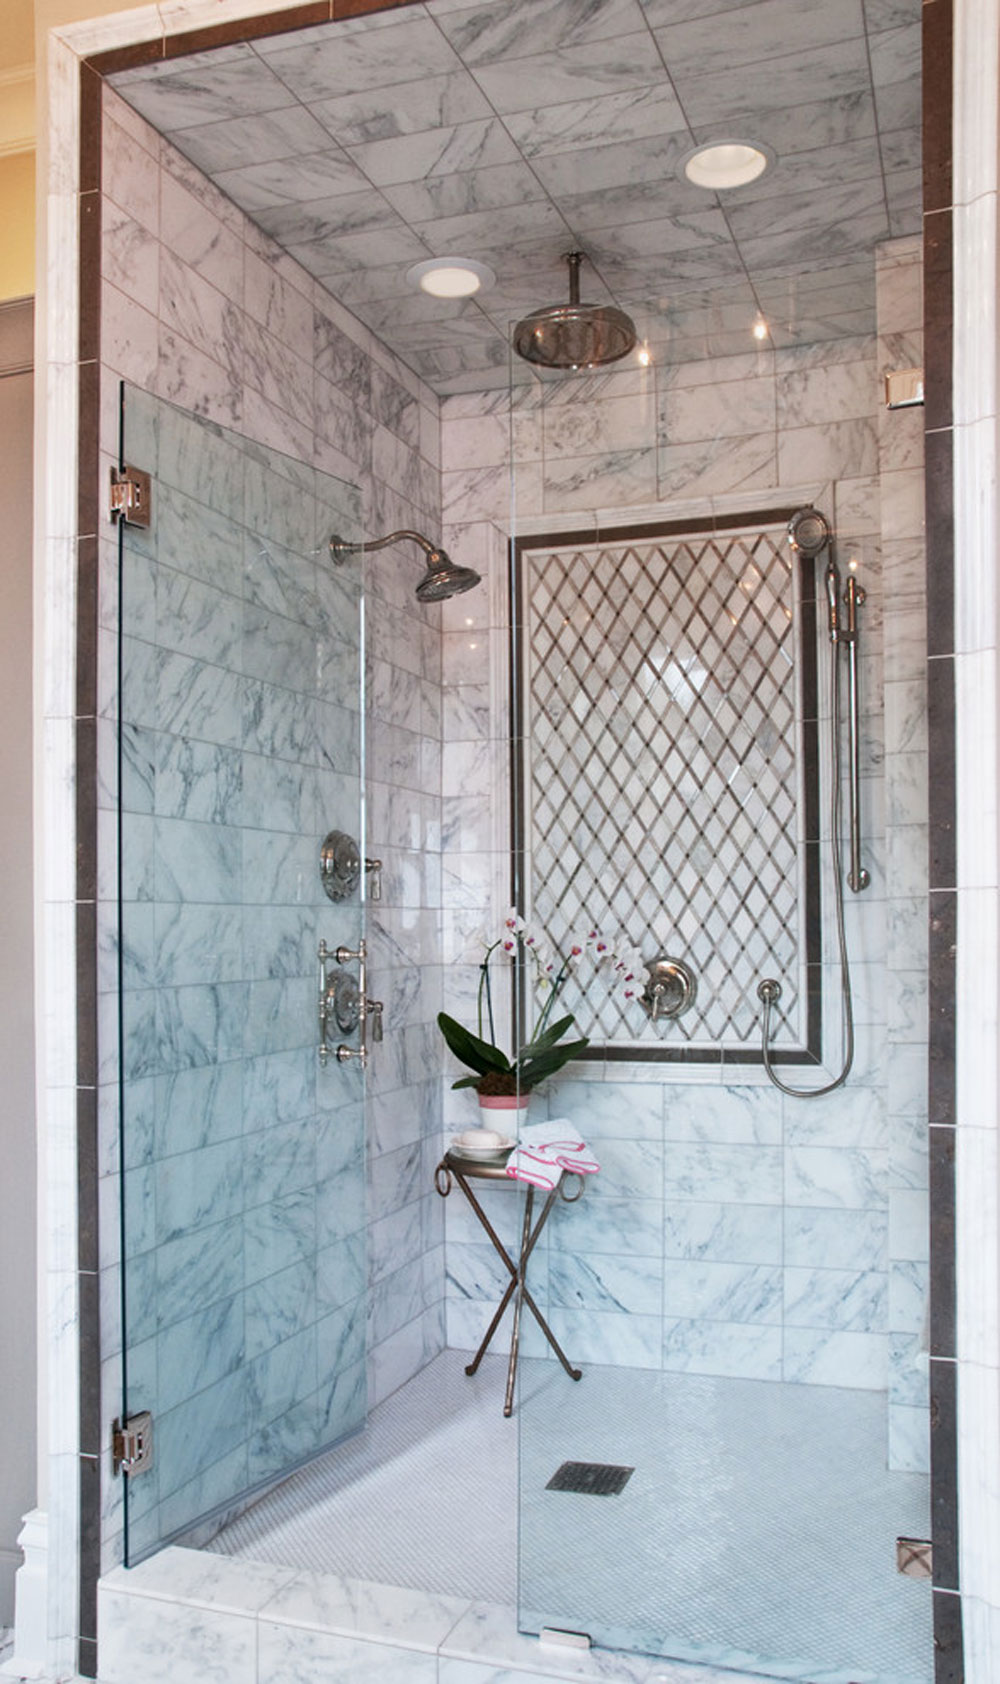 Shower niche ideas and best practices for your bathroom